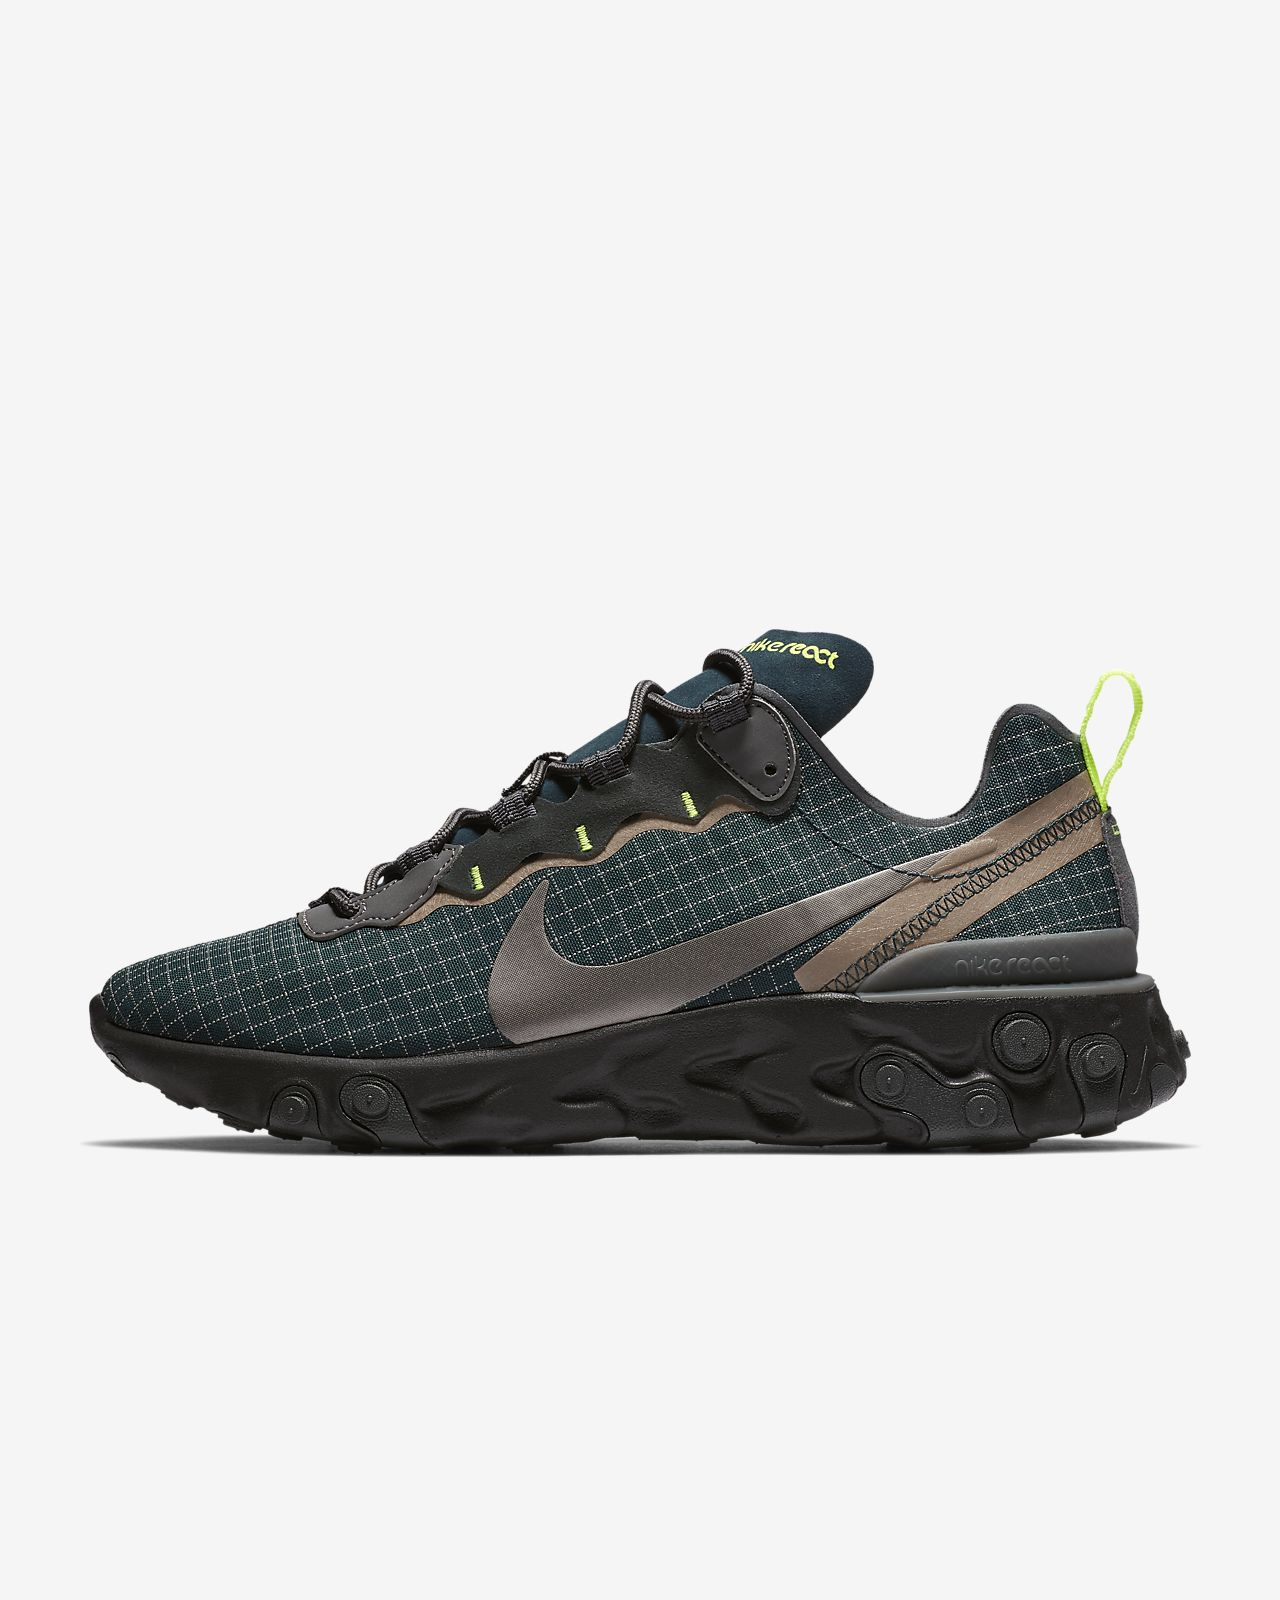 8c1fd71b4c329 Nike React Element 55 Men s Shoe. Nike.com GB